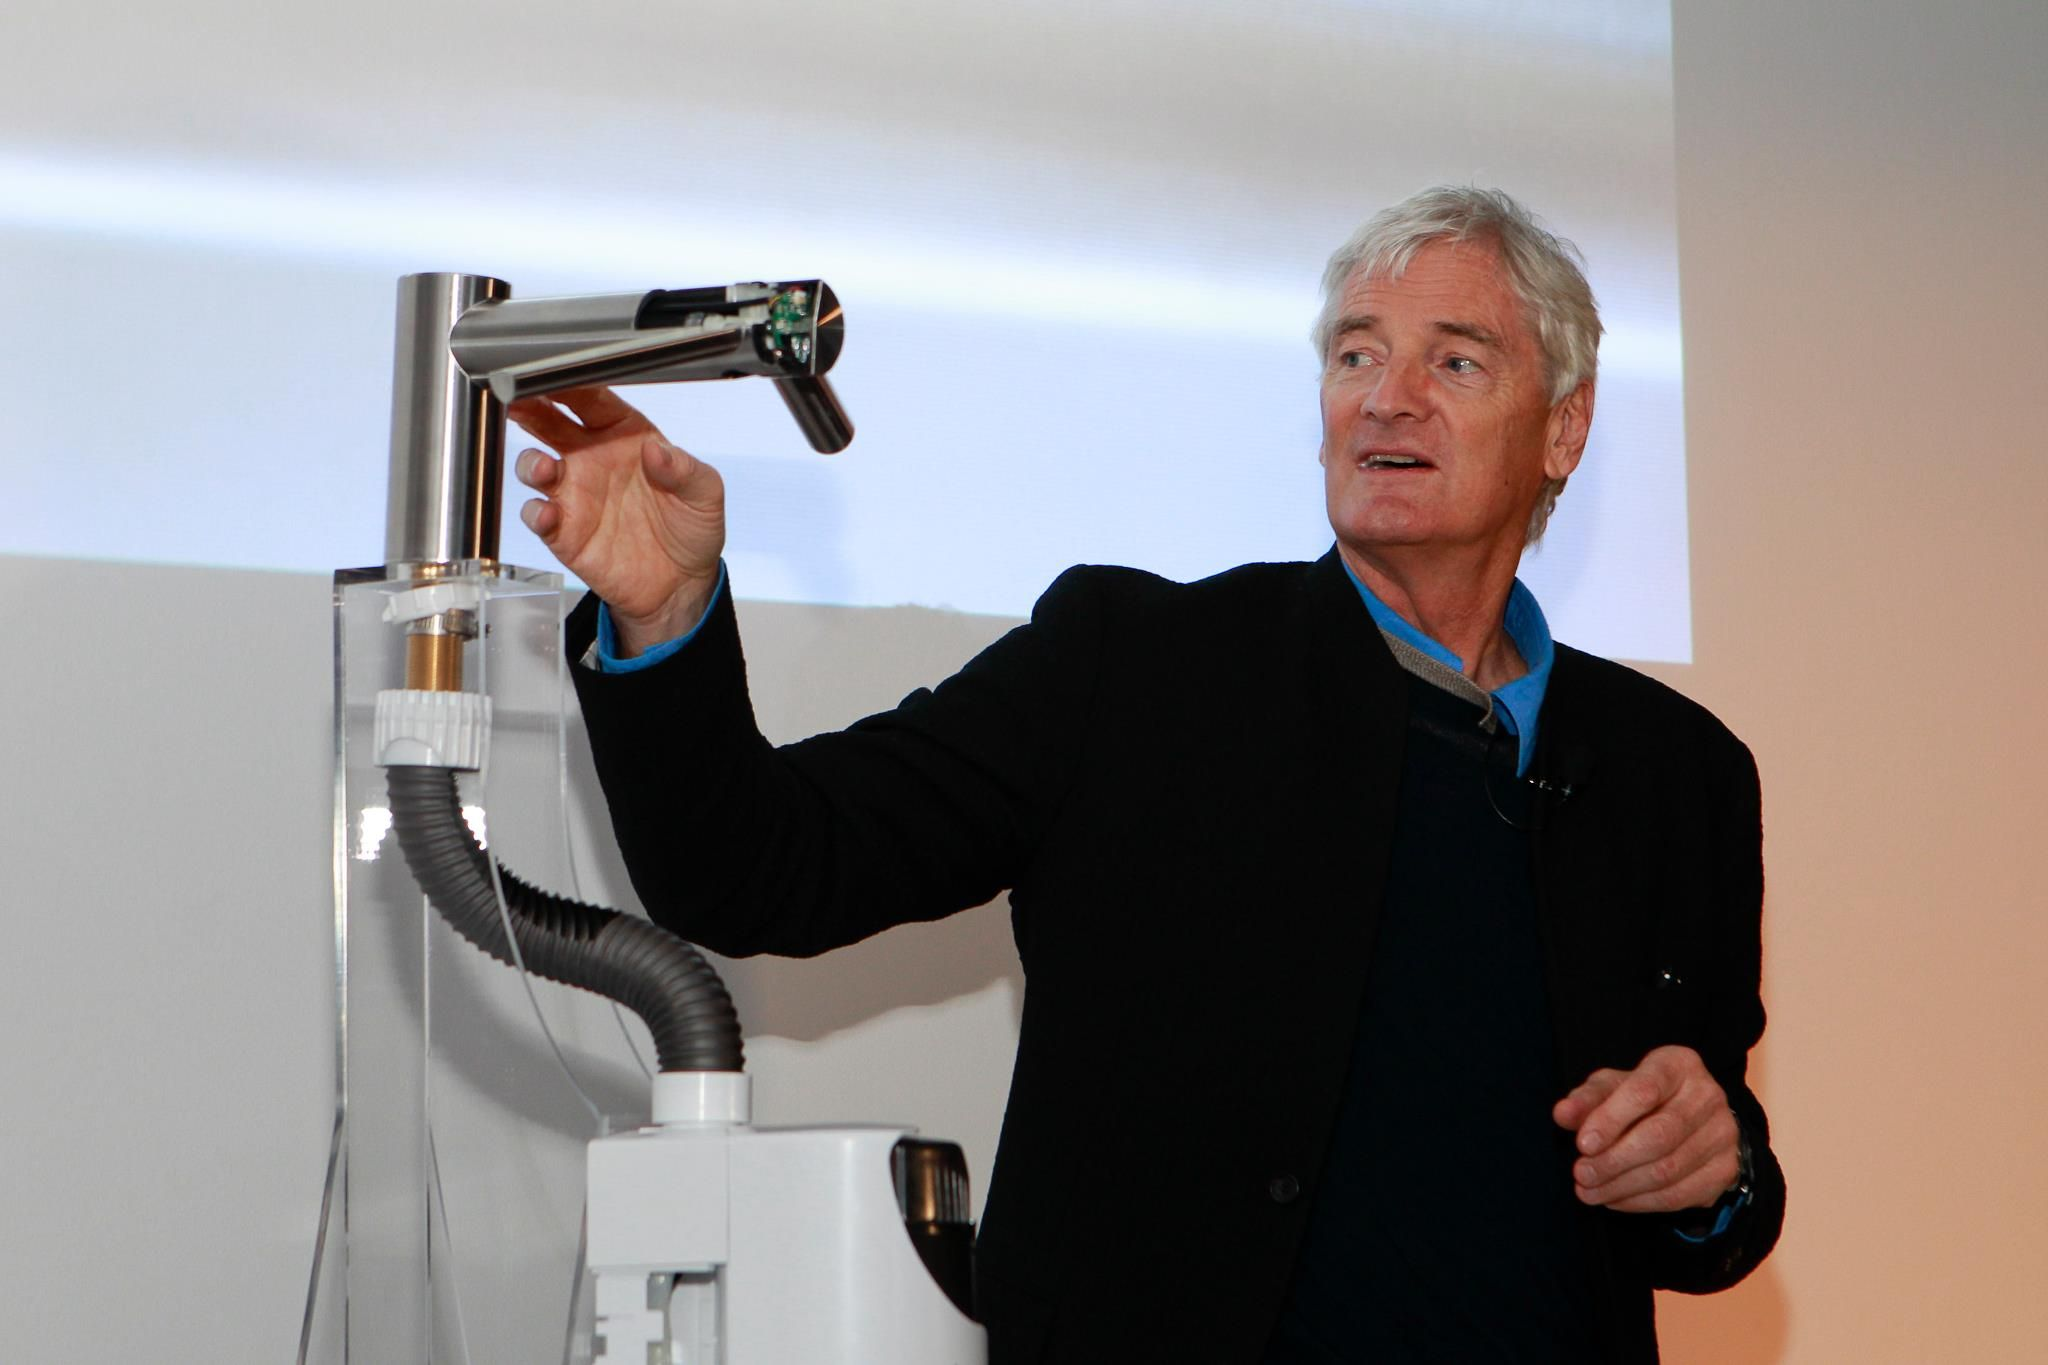 James Dyson just launched our new technology in New York. Using ...